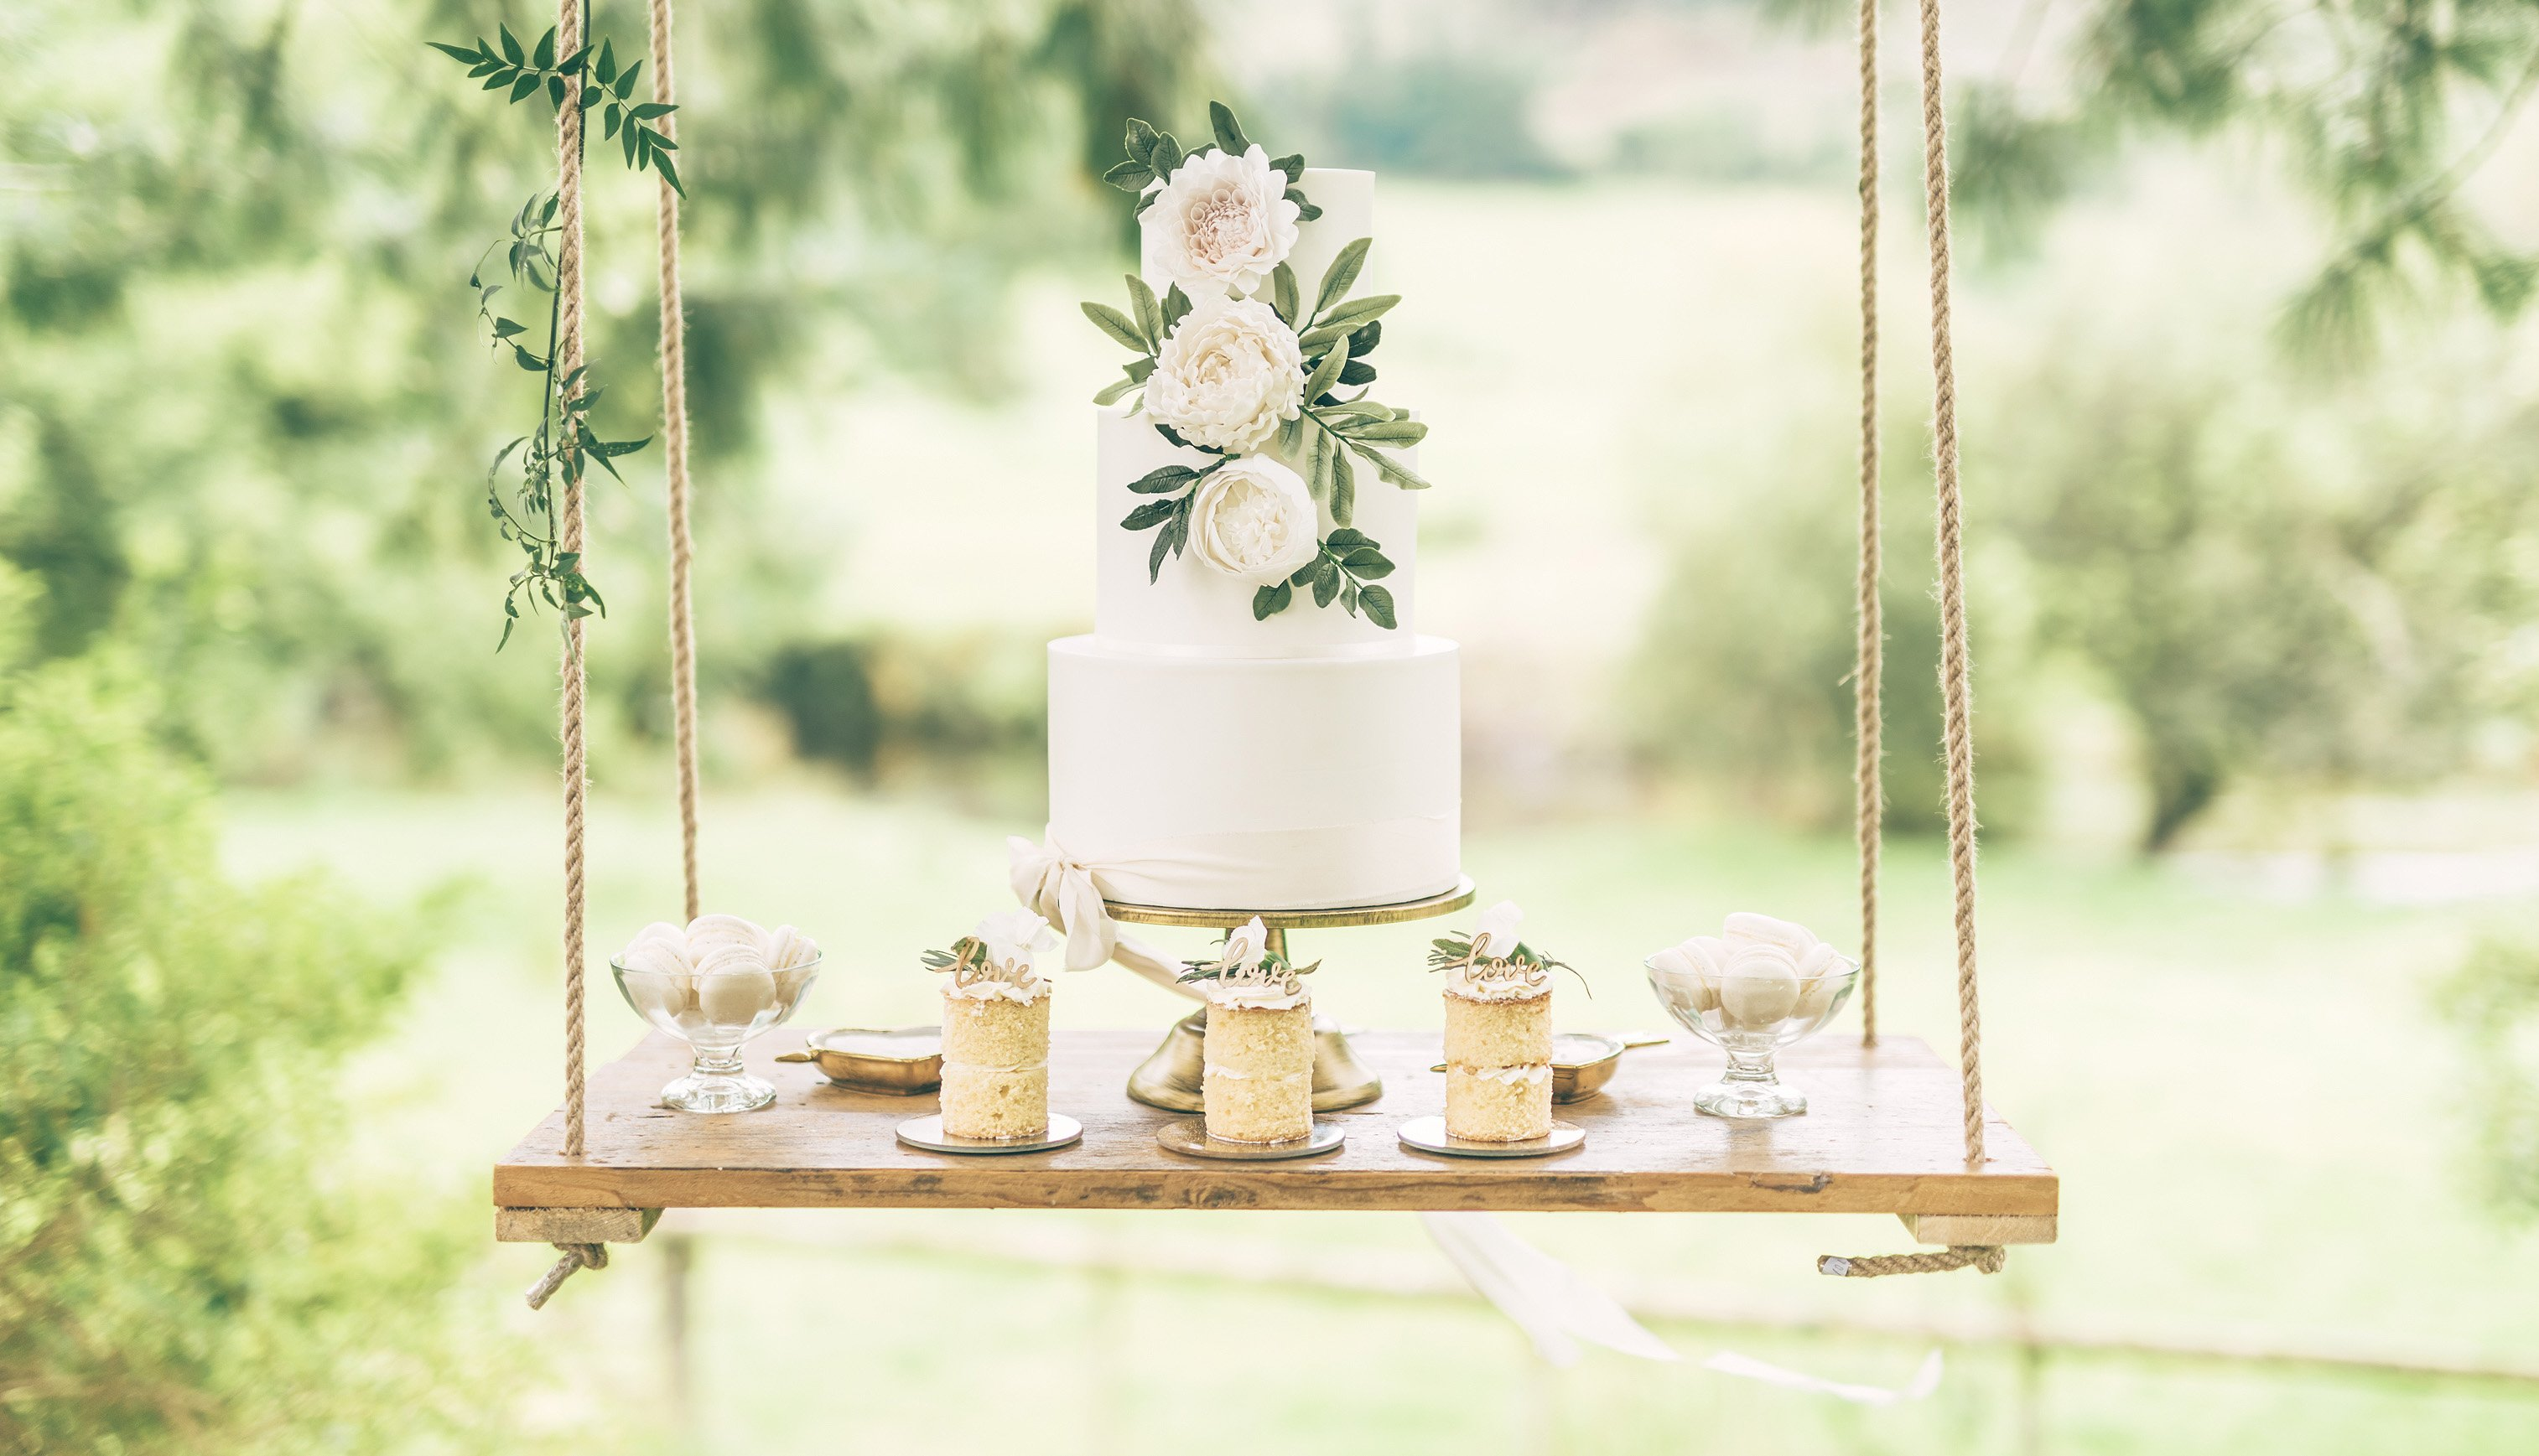 Wedding cake balancing on a swing hanging from a tree